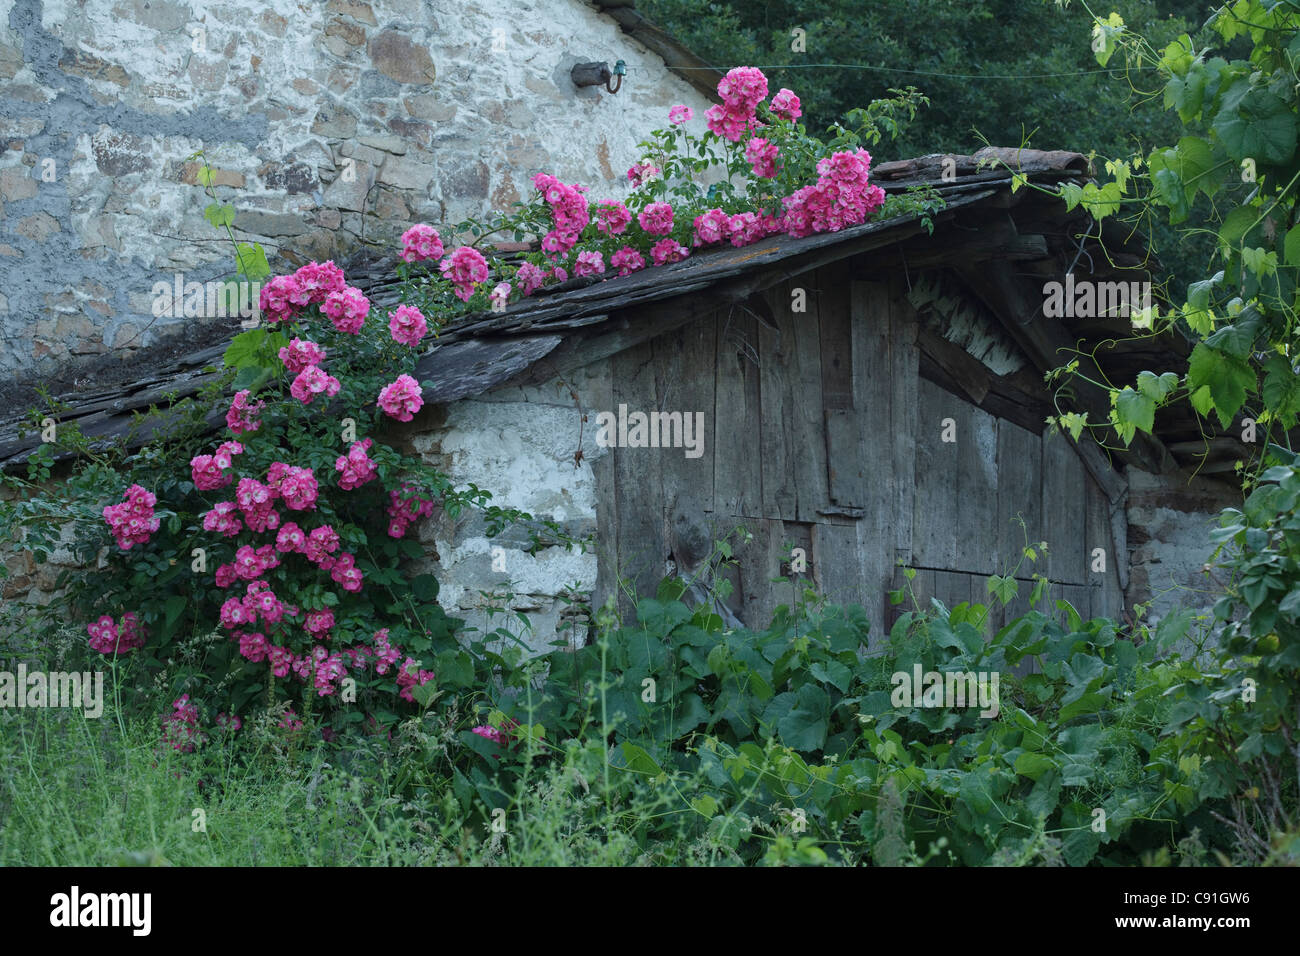 Detail of country house with roses, Camino Primitivo, Province of Lugo, Galicia, Northern Spain, Spain, Europe - Stock Image